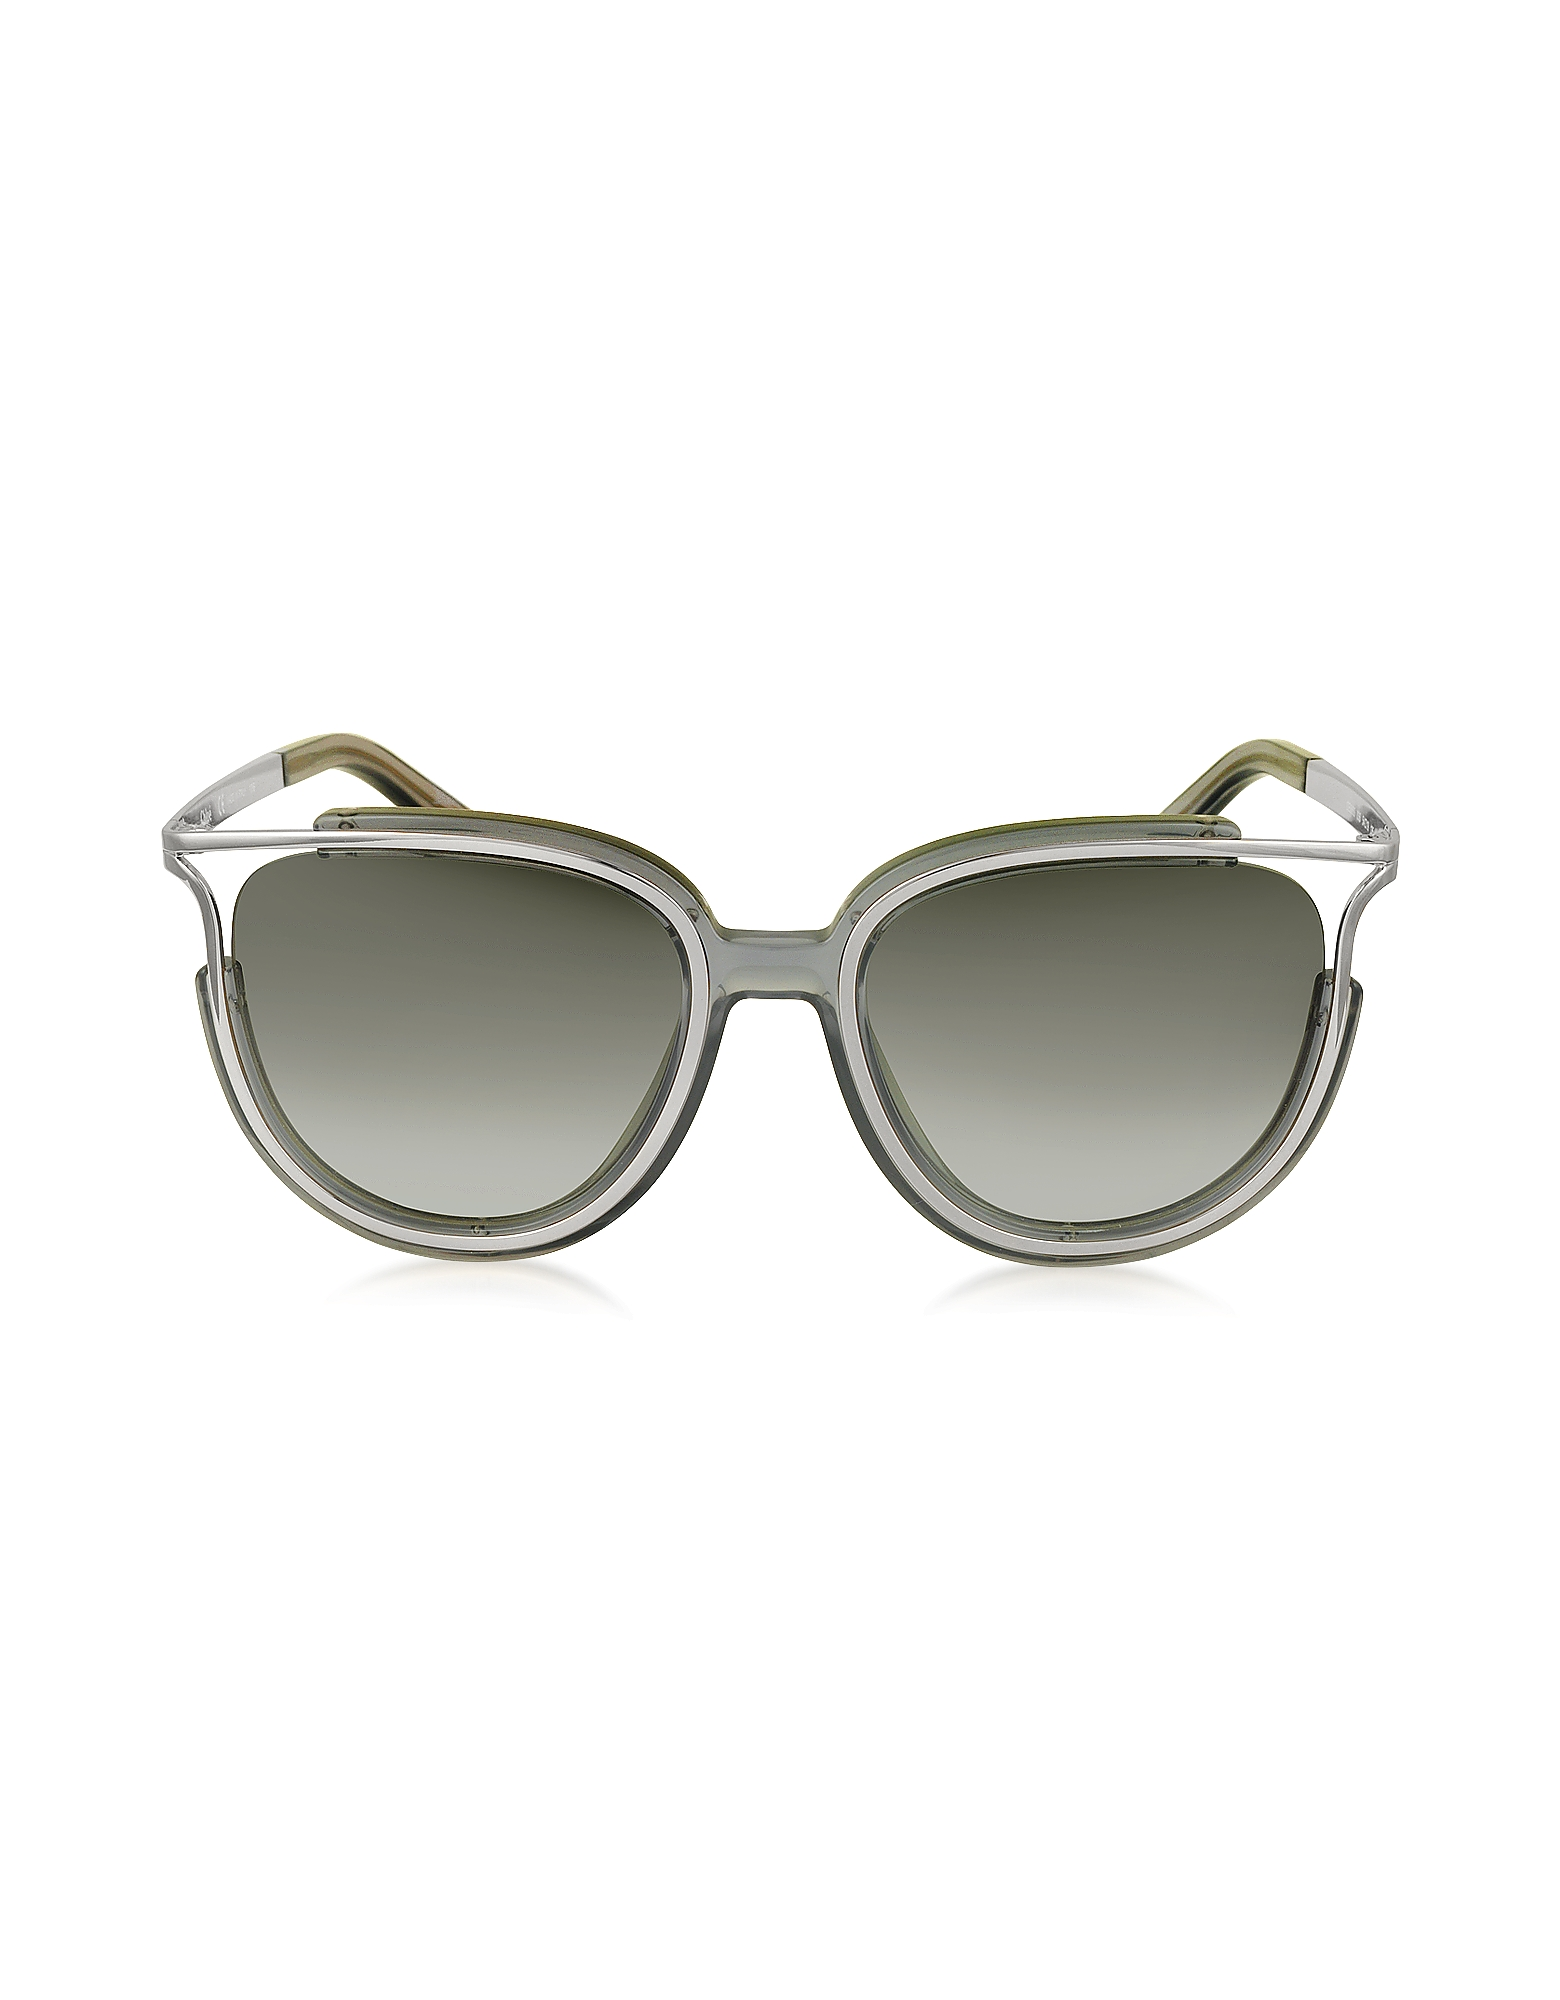 Chloe Sunglasses, JAYME CE 688S 036 Gray Acetate and Silver Metal Square Women's Sunglasses